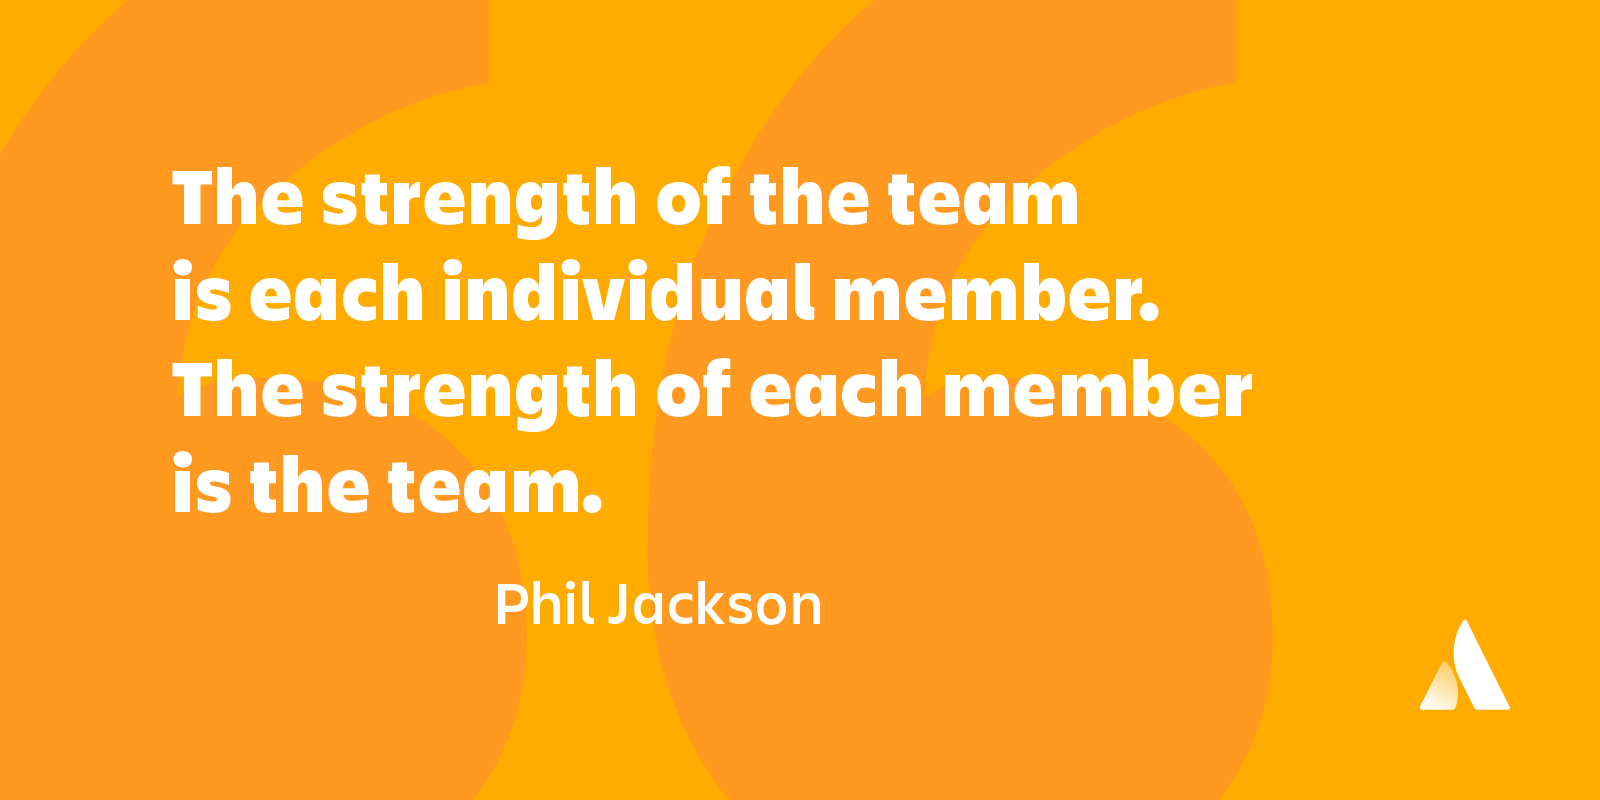 Team Quotes 18 non corny teamwork quotes you'll actually like   Atlassian Blog Team Quotes